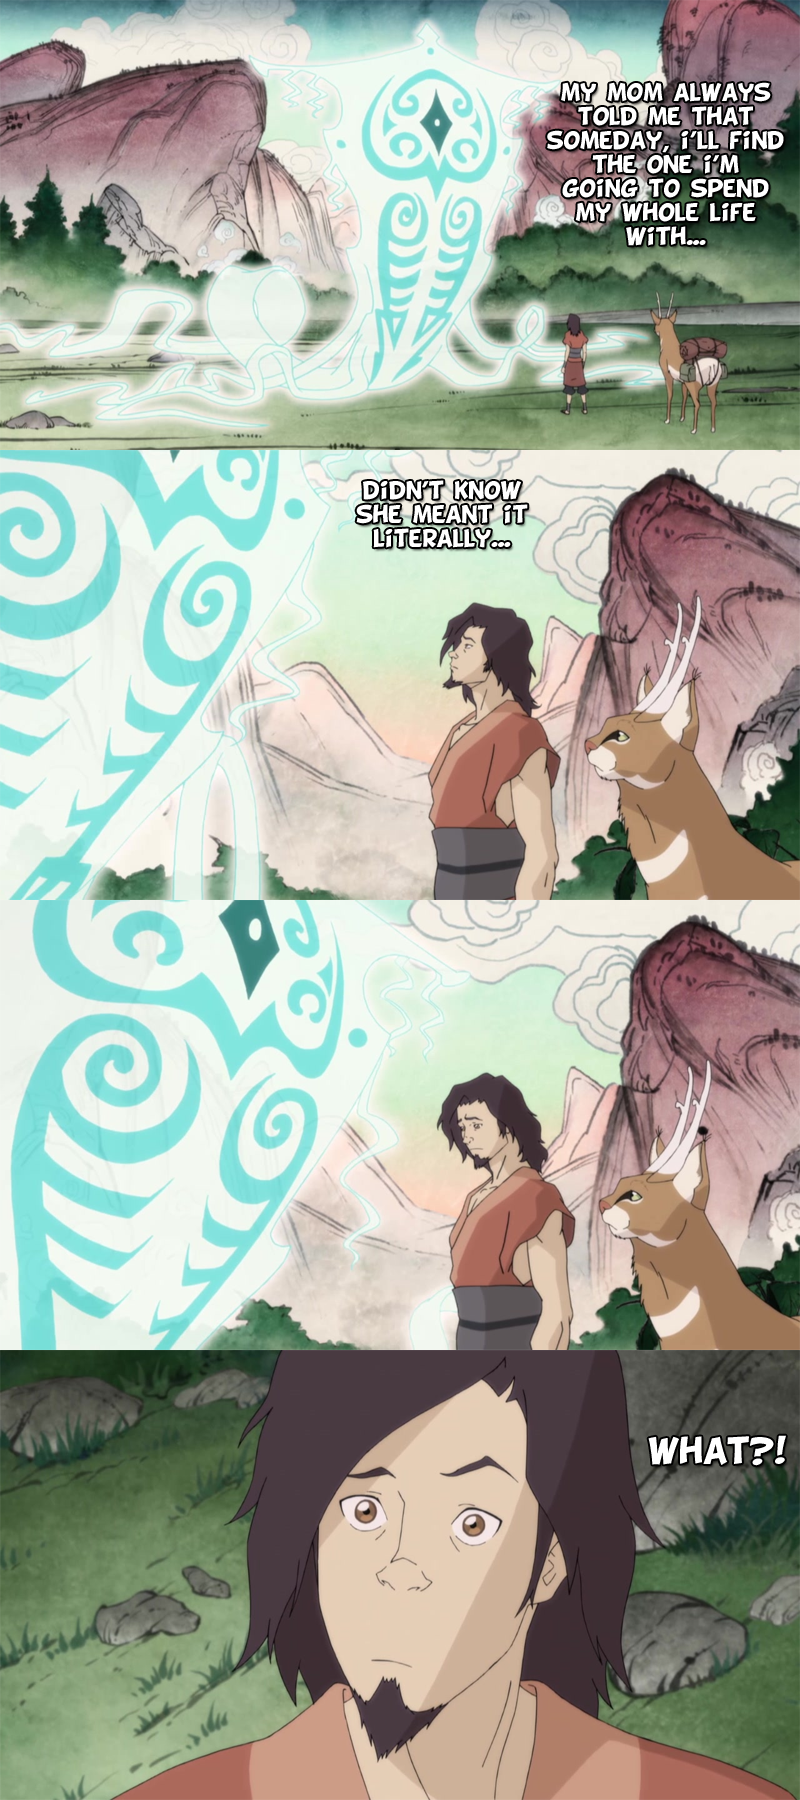 Legend of Korra - Find the one... by yourparodies